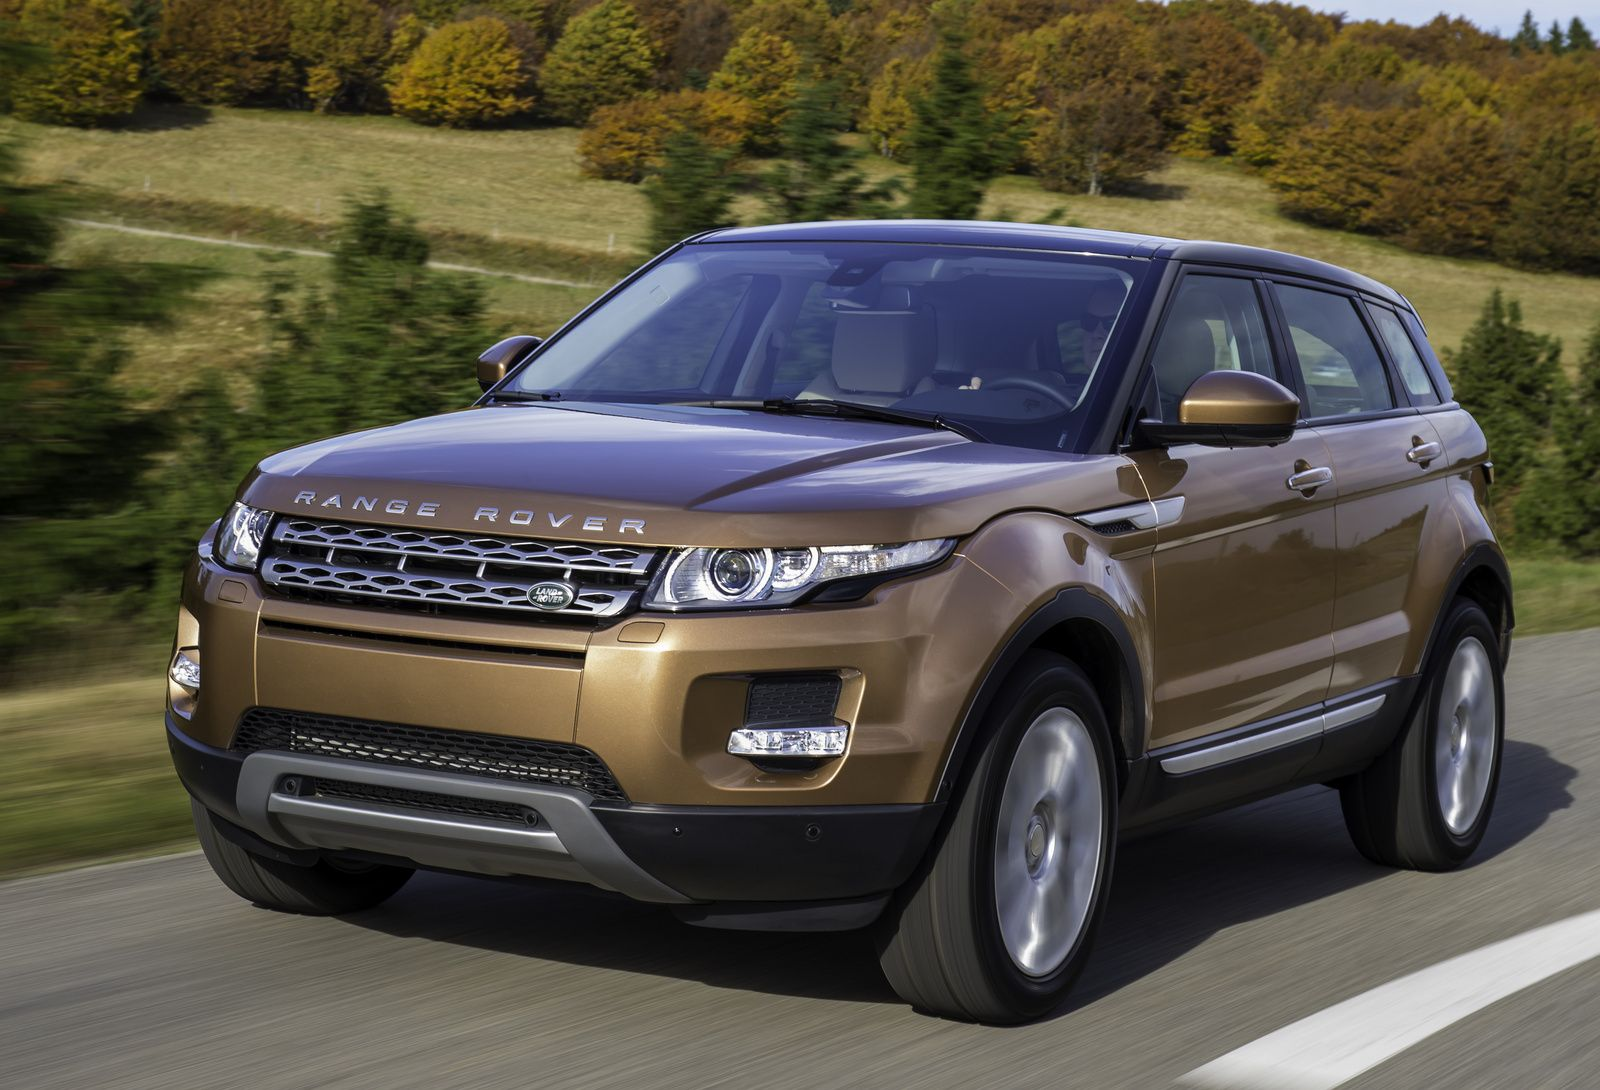 2017 range rover facelift release date and price 2017 2018 2019 car guide super auto reviews pinterest range rovers auto reviews and car guide